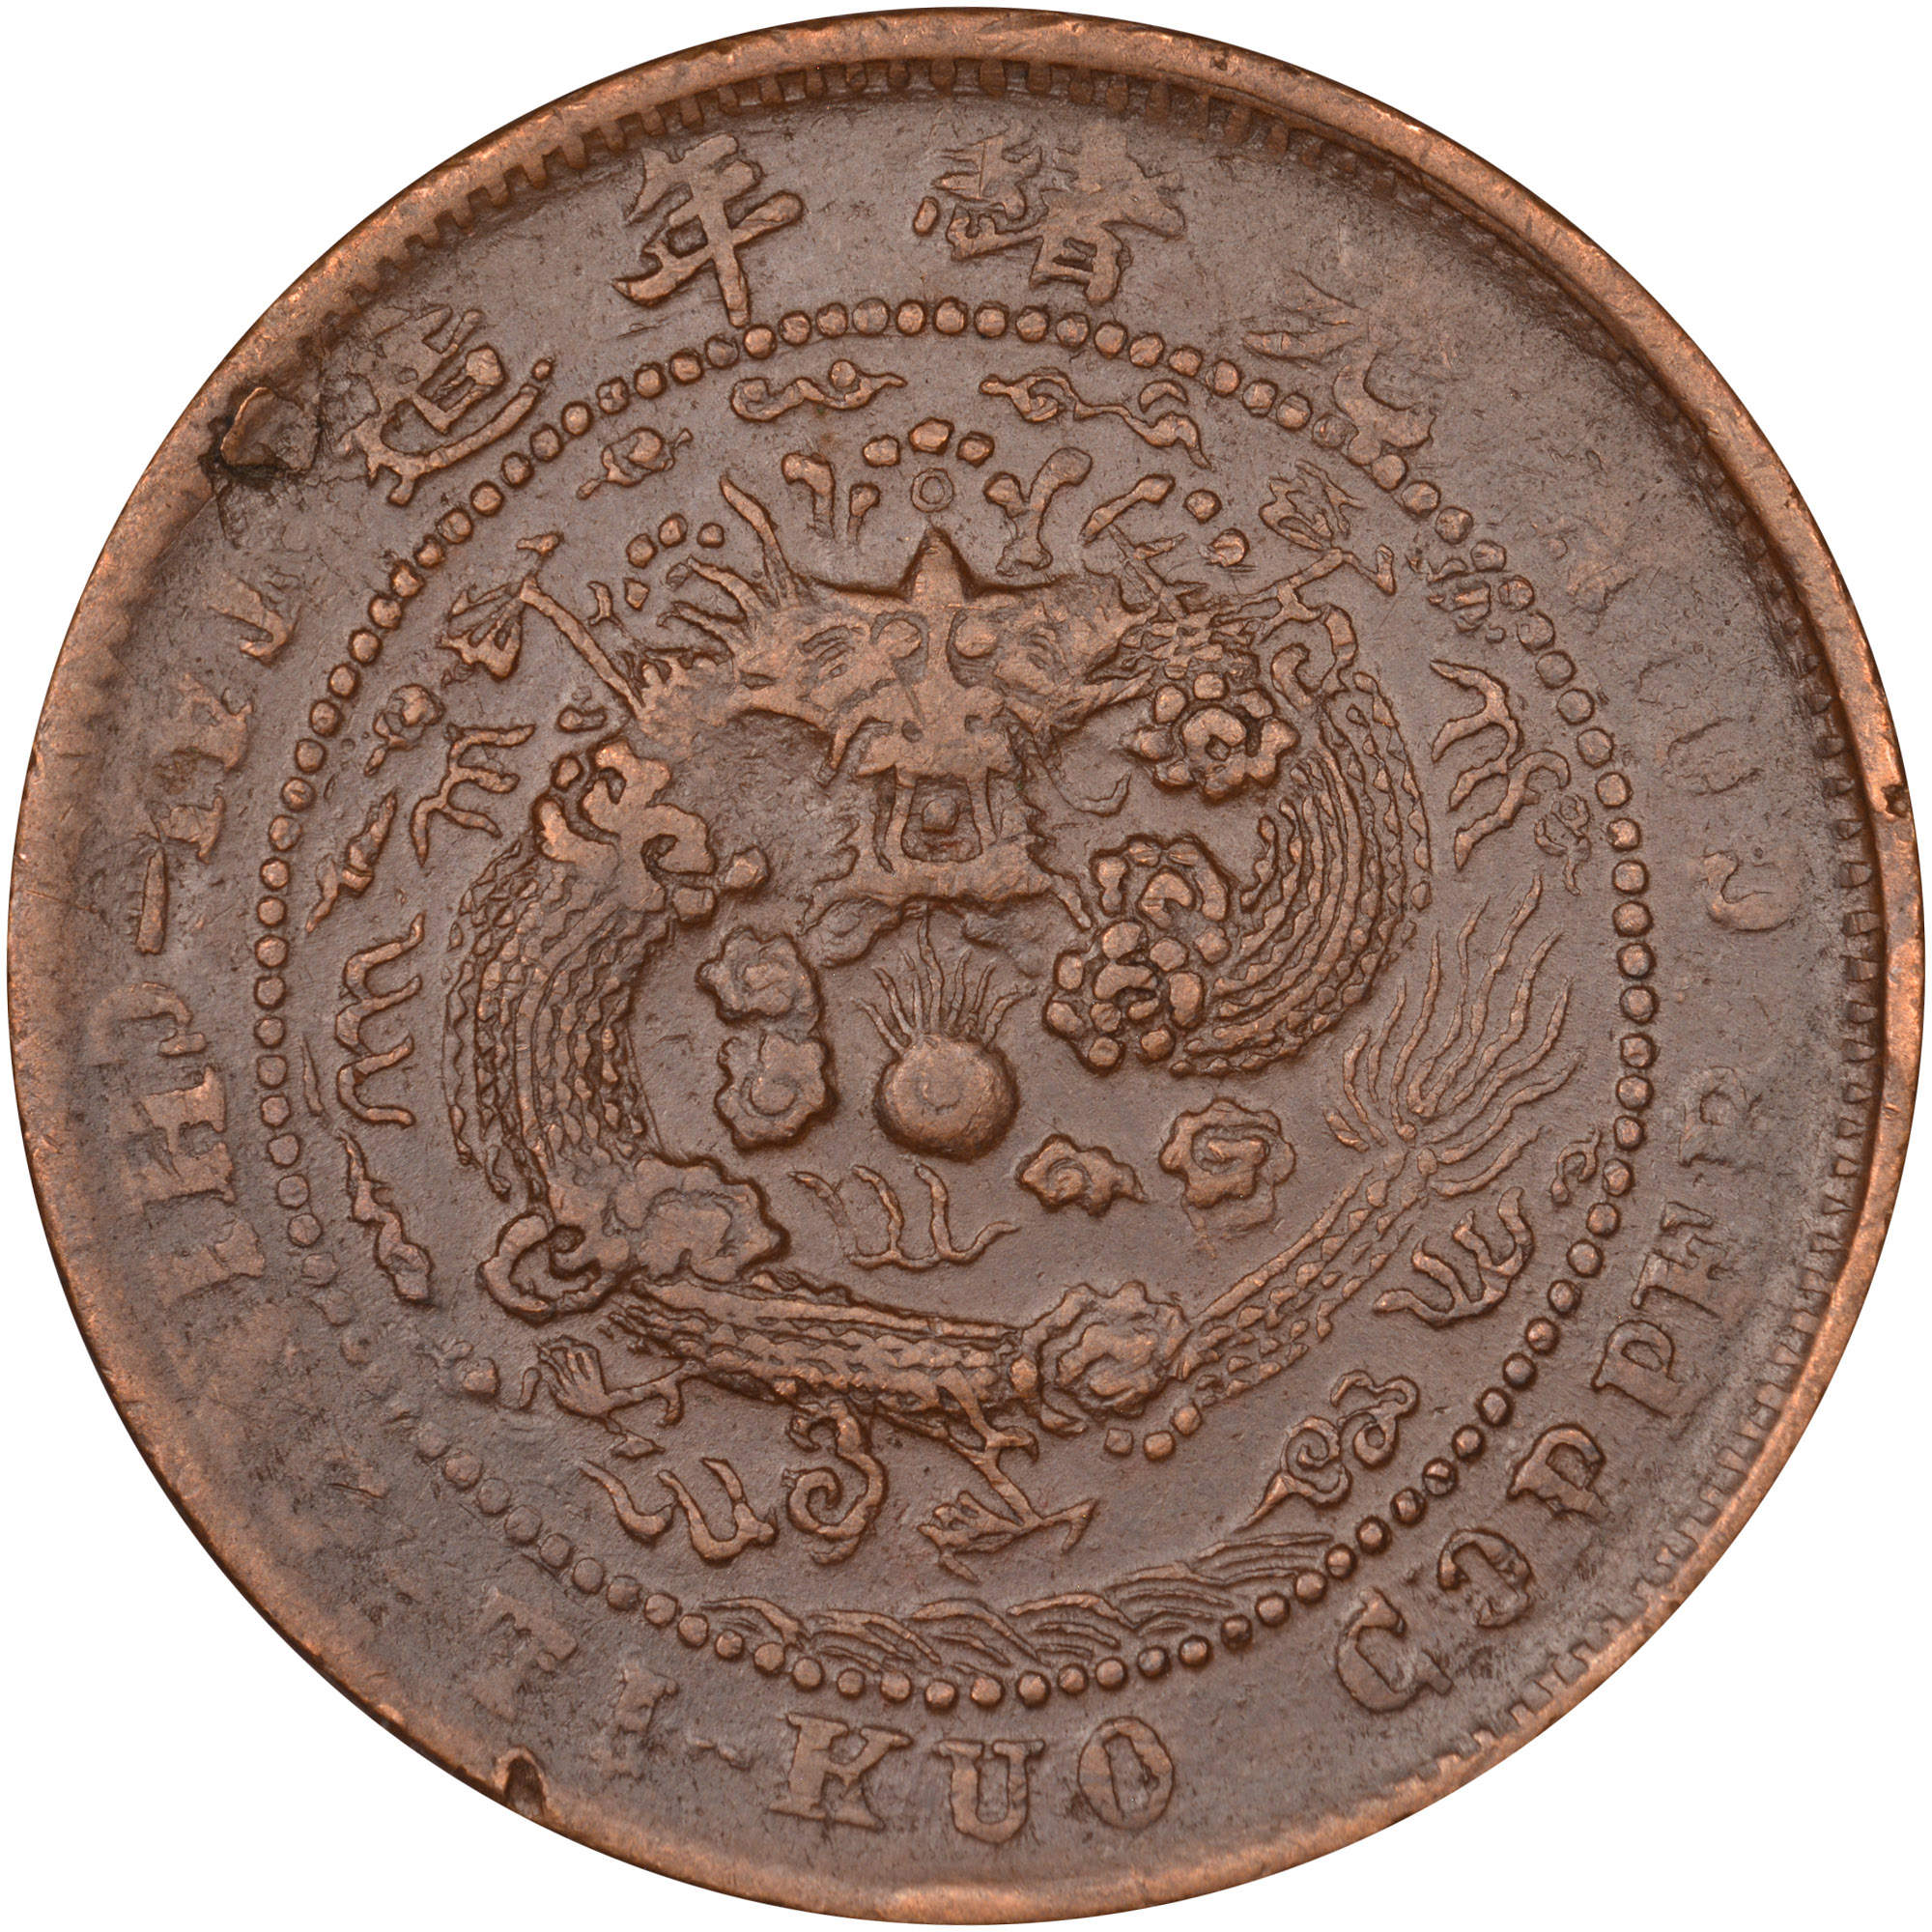 (1906) China ANHWEI PROVINCE 10 Cash reverse